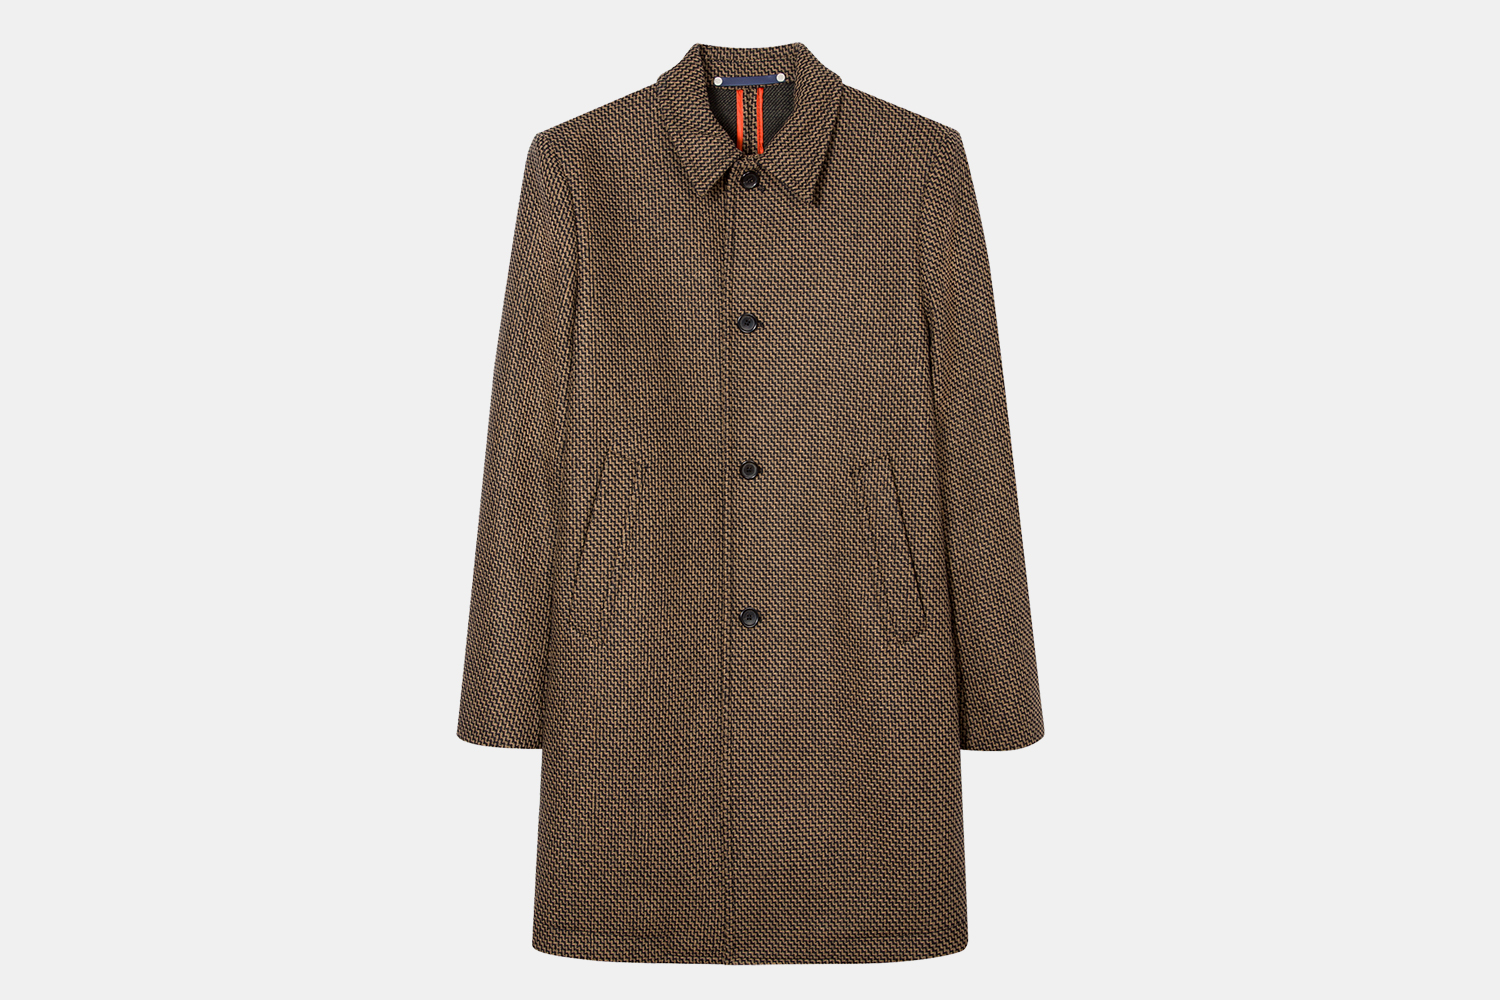 Deal: The 7 Best Items From Paul Smith's Colossal Sale